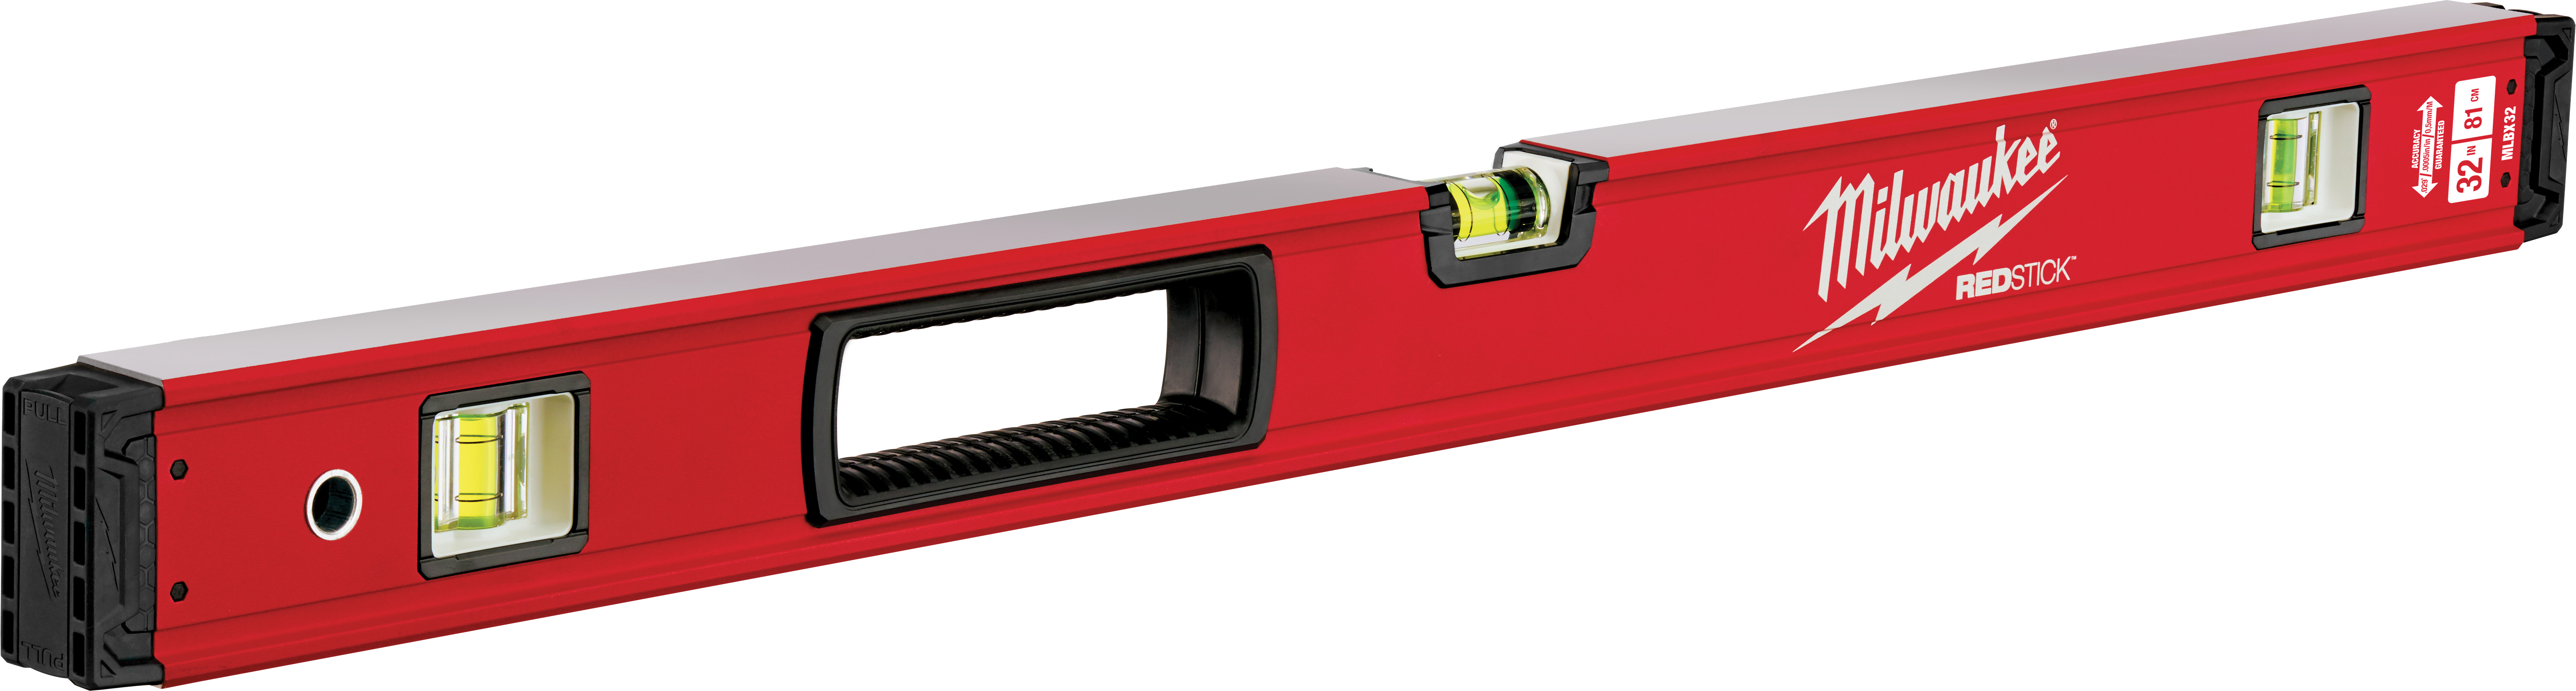 Milwaukee® REDSTICK™ MLBX32 Box Level, 32 in L, 3 Vials, Aluminum, (1) Level, (2) Plumb Vial Position, 0.0005 in/in Accuracy